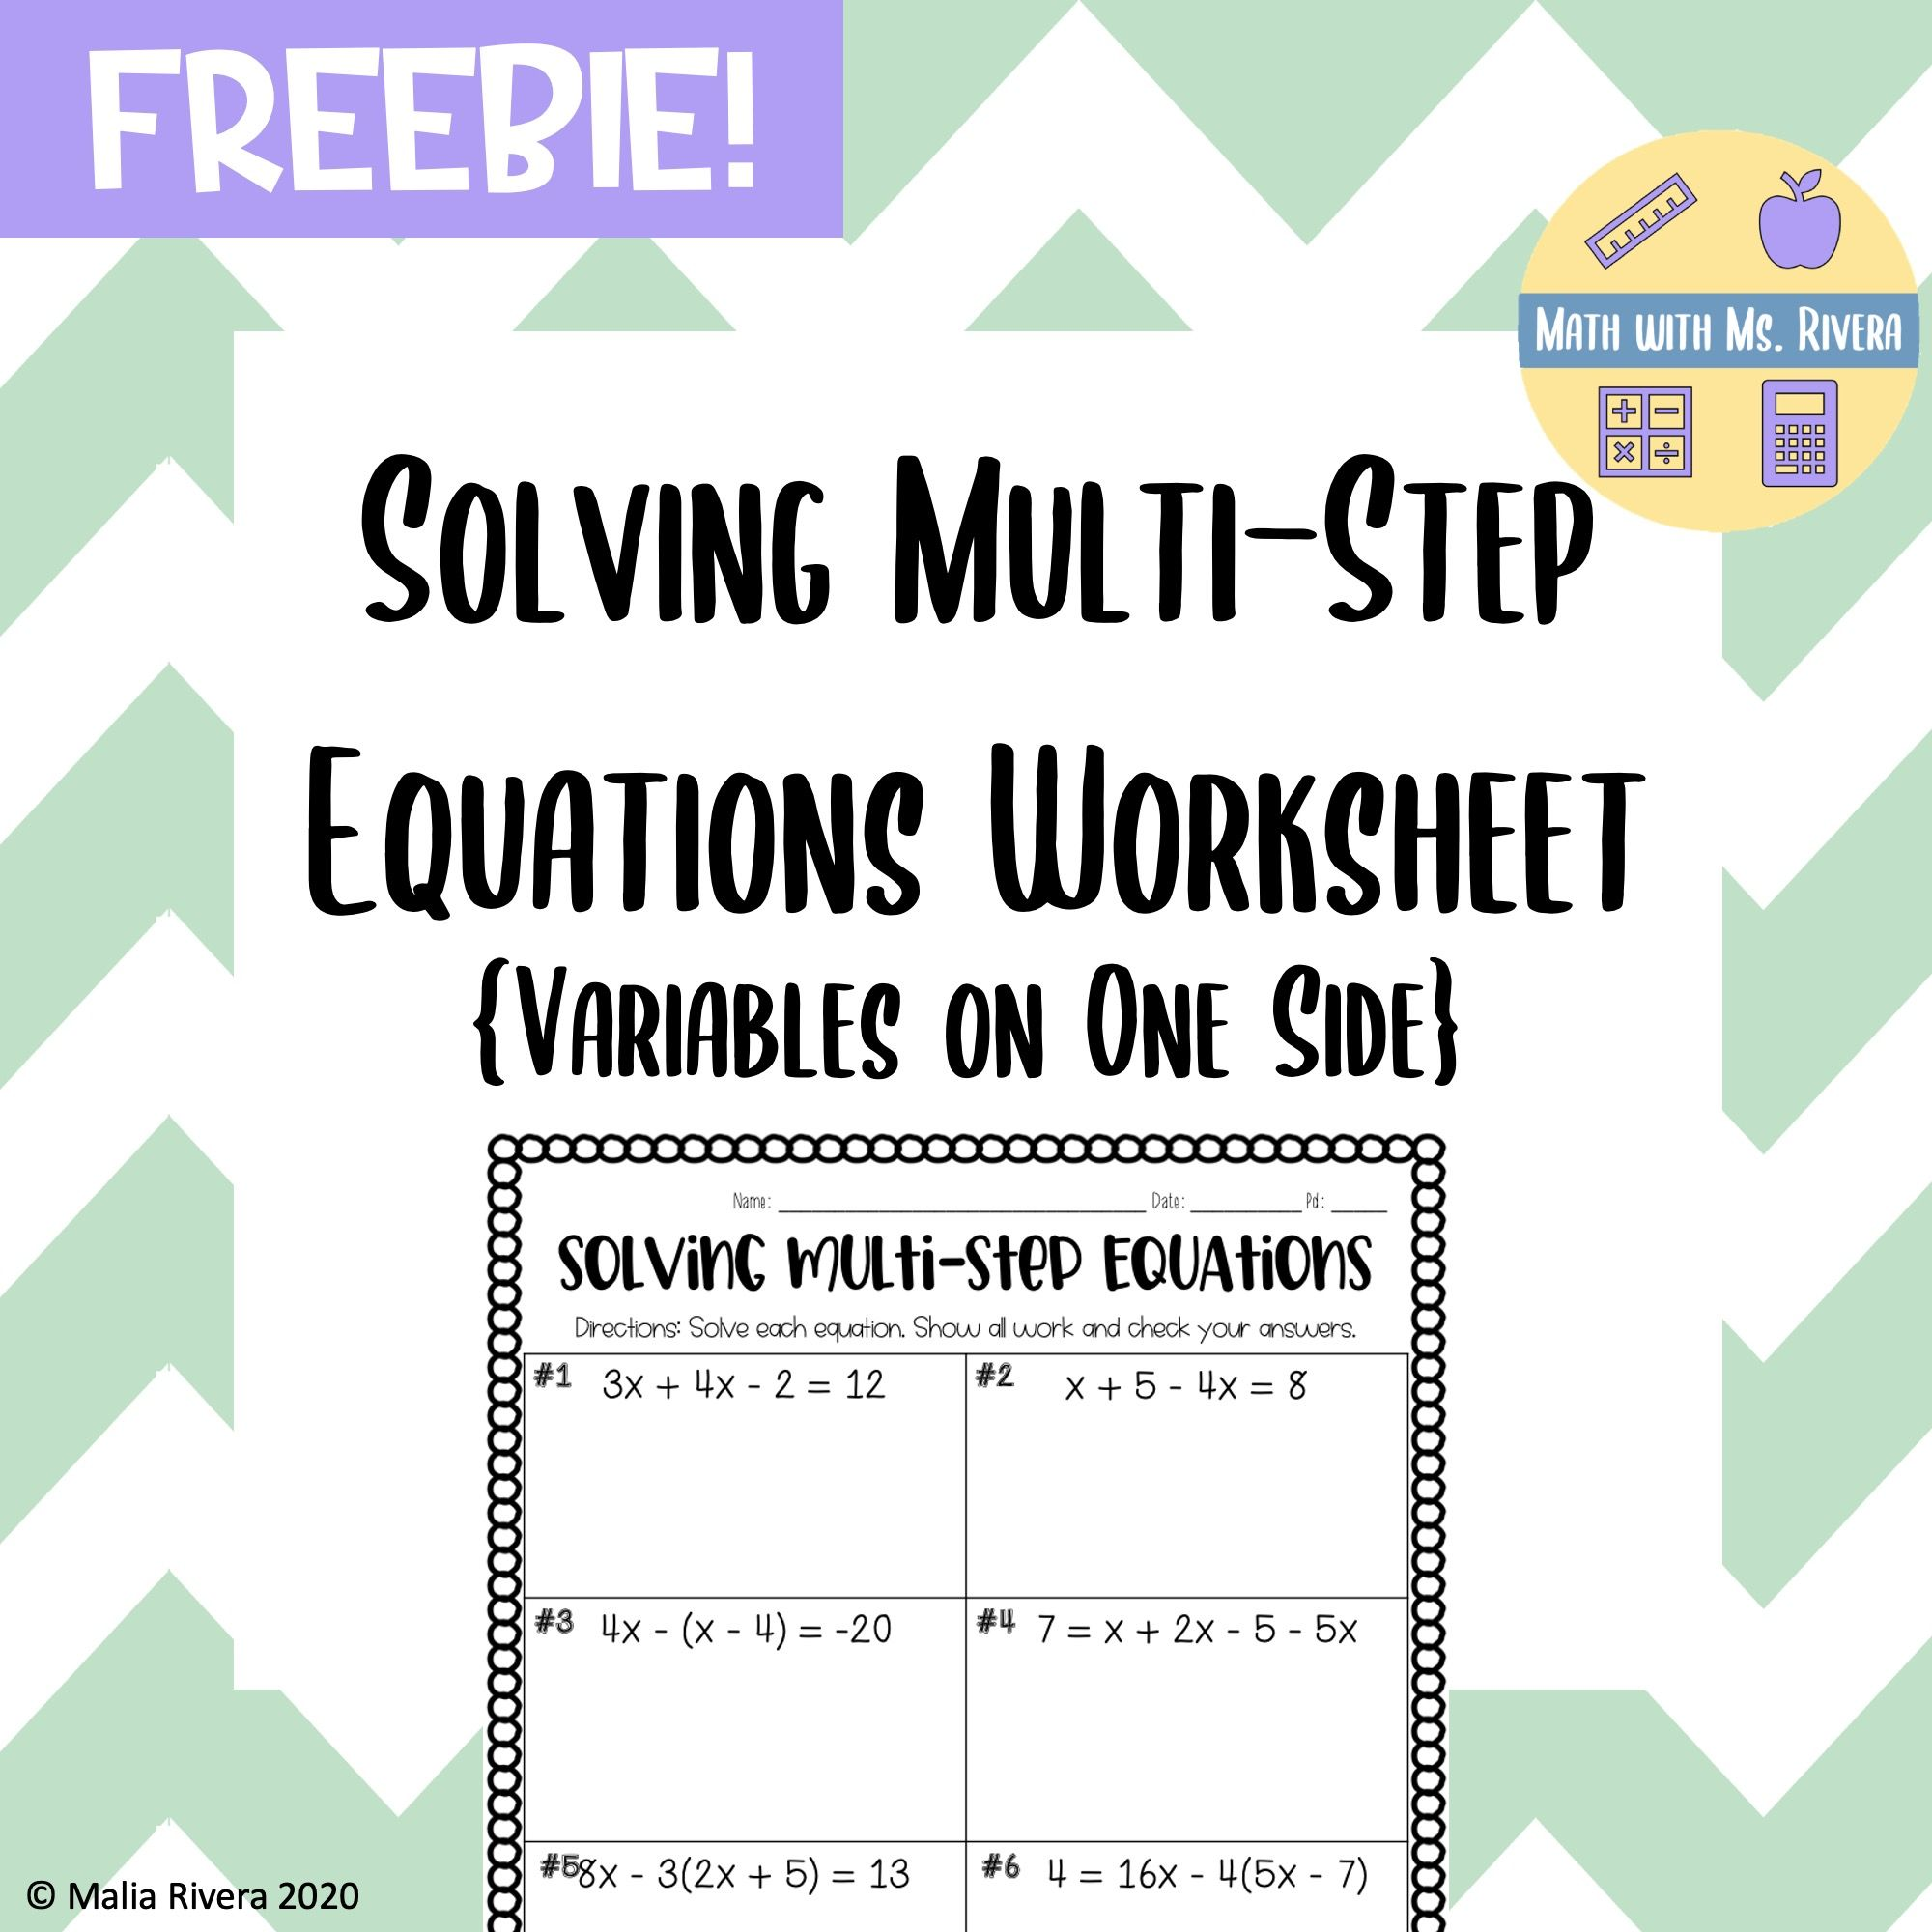 Solving Multi Step Equations Worksheet Variables On One Side Freebie In 2020 Multi Step Equations Worksheets Multi Step Equations Solving Multi Step Equations